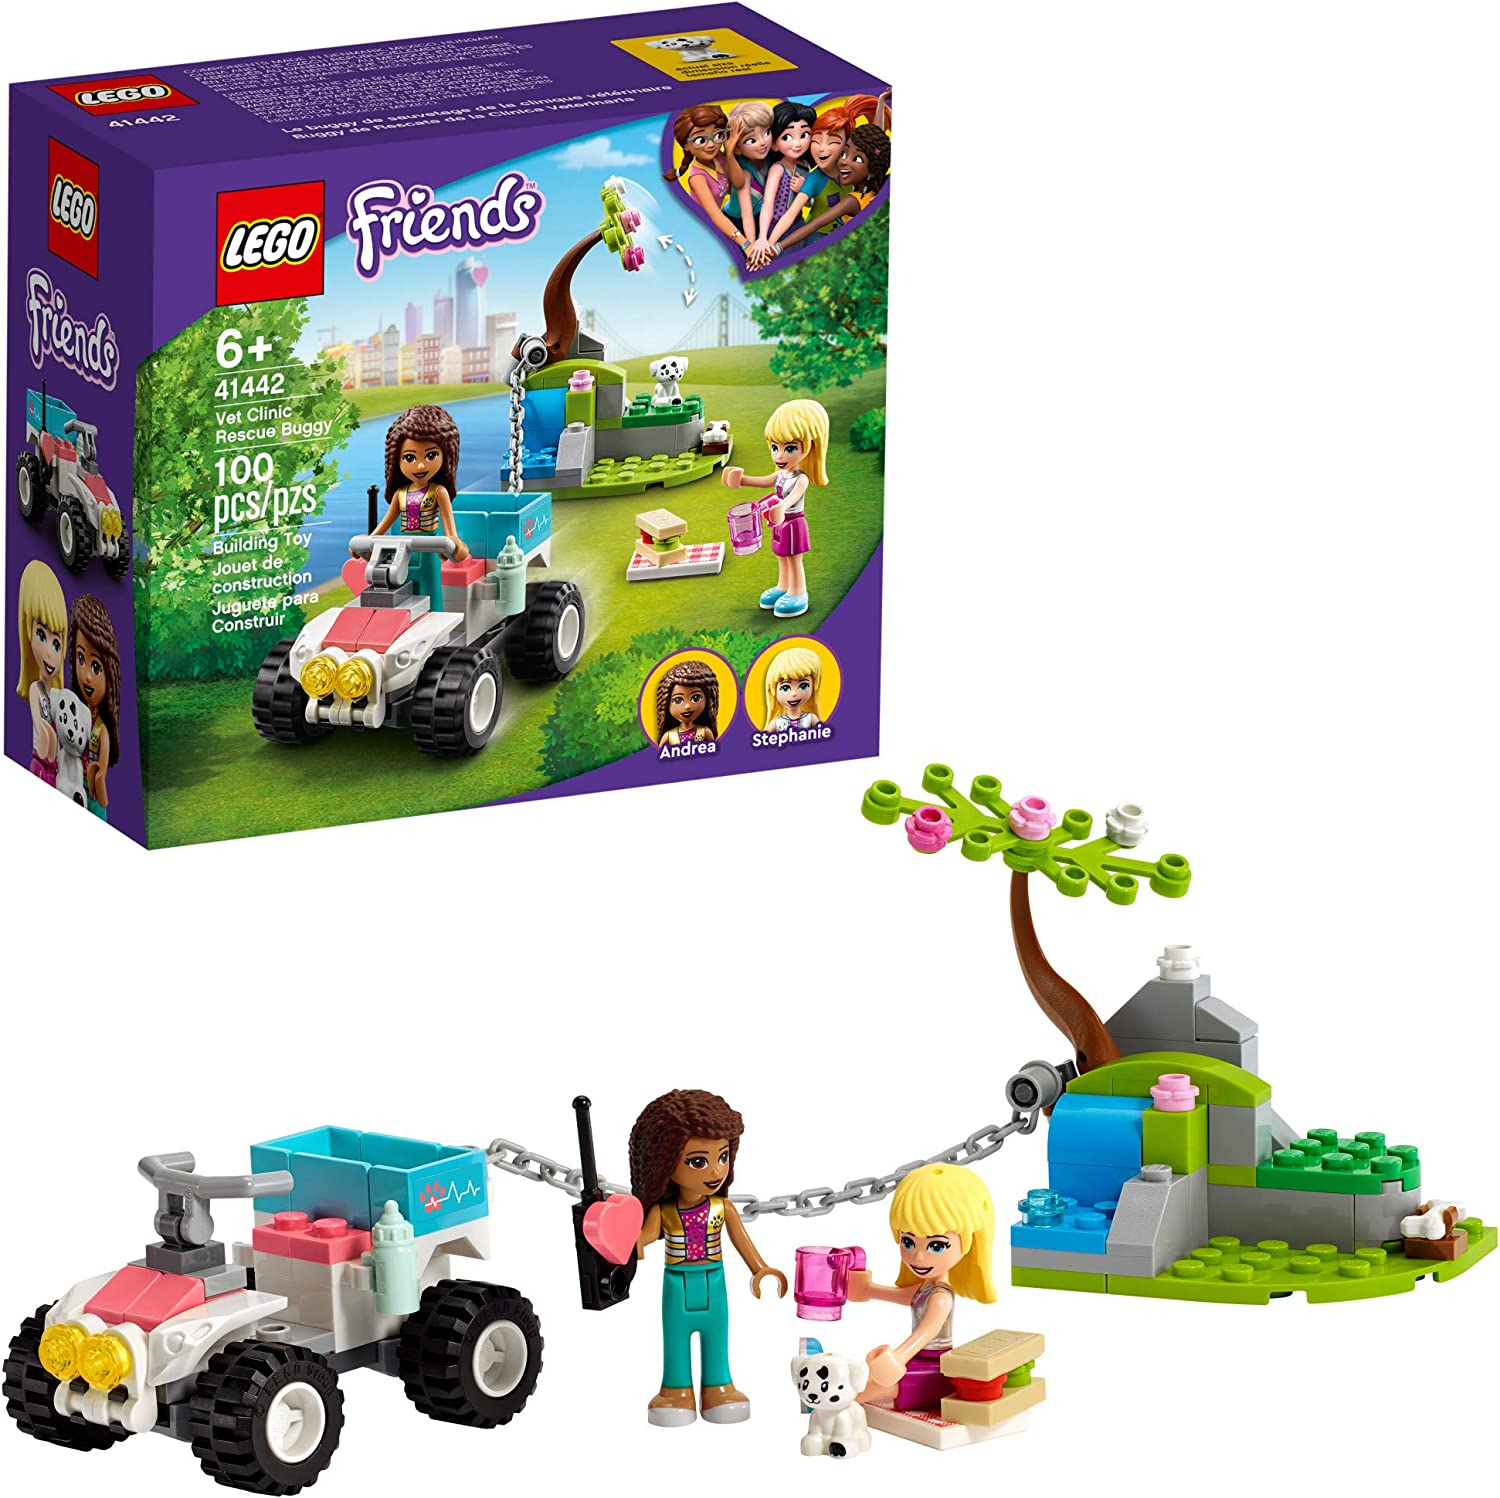 LEGO Friends Vet Clinic Rescue Buggy 41442 Building Kit; Vet Clinic Collectible Toys for Kids Aged 6+; Includes First-Aid Toy Accessories and Children's Vet Kit, New 2021 (100 Pieces)